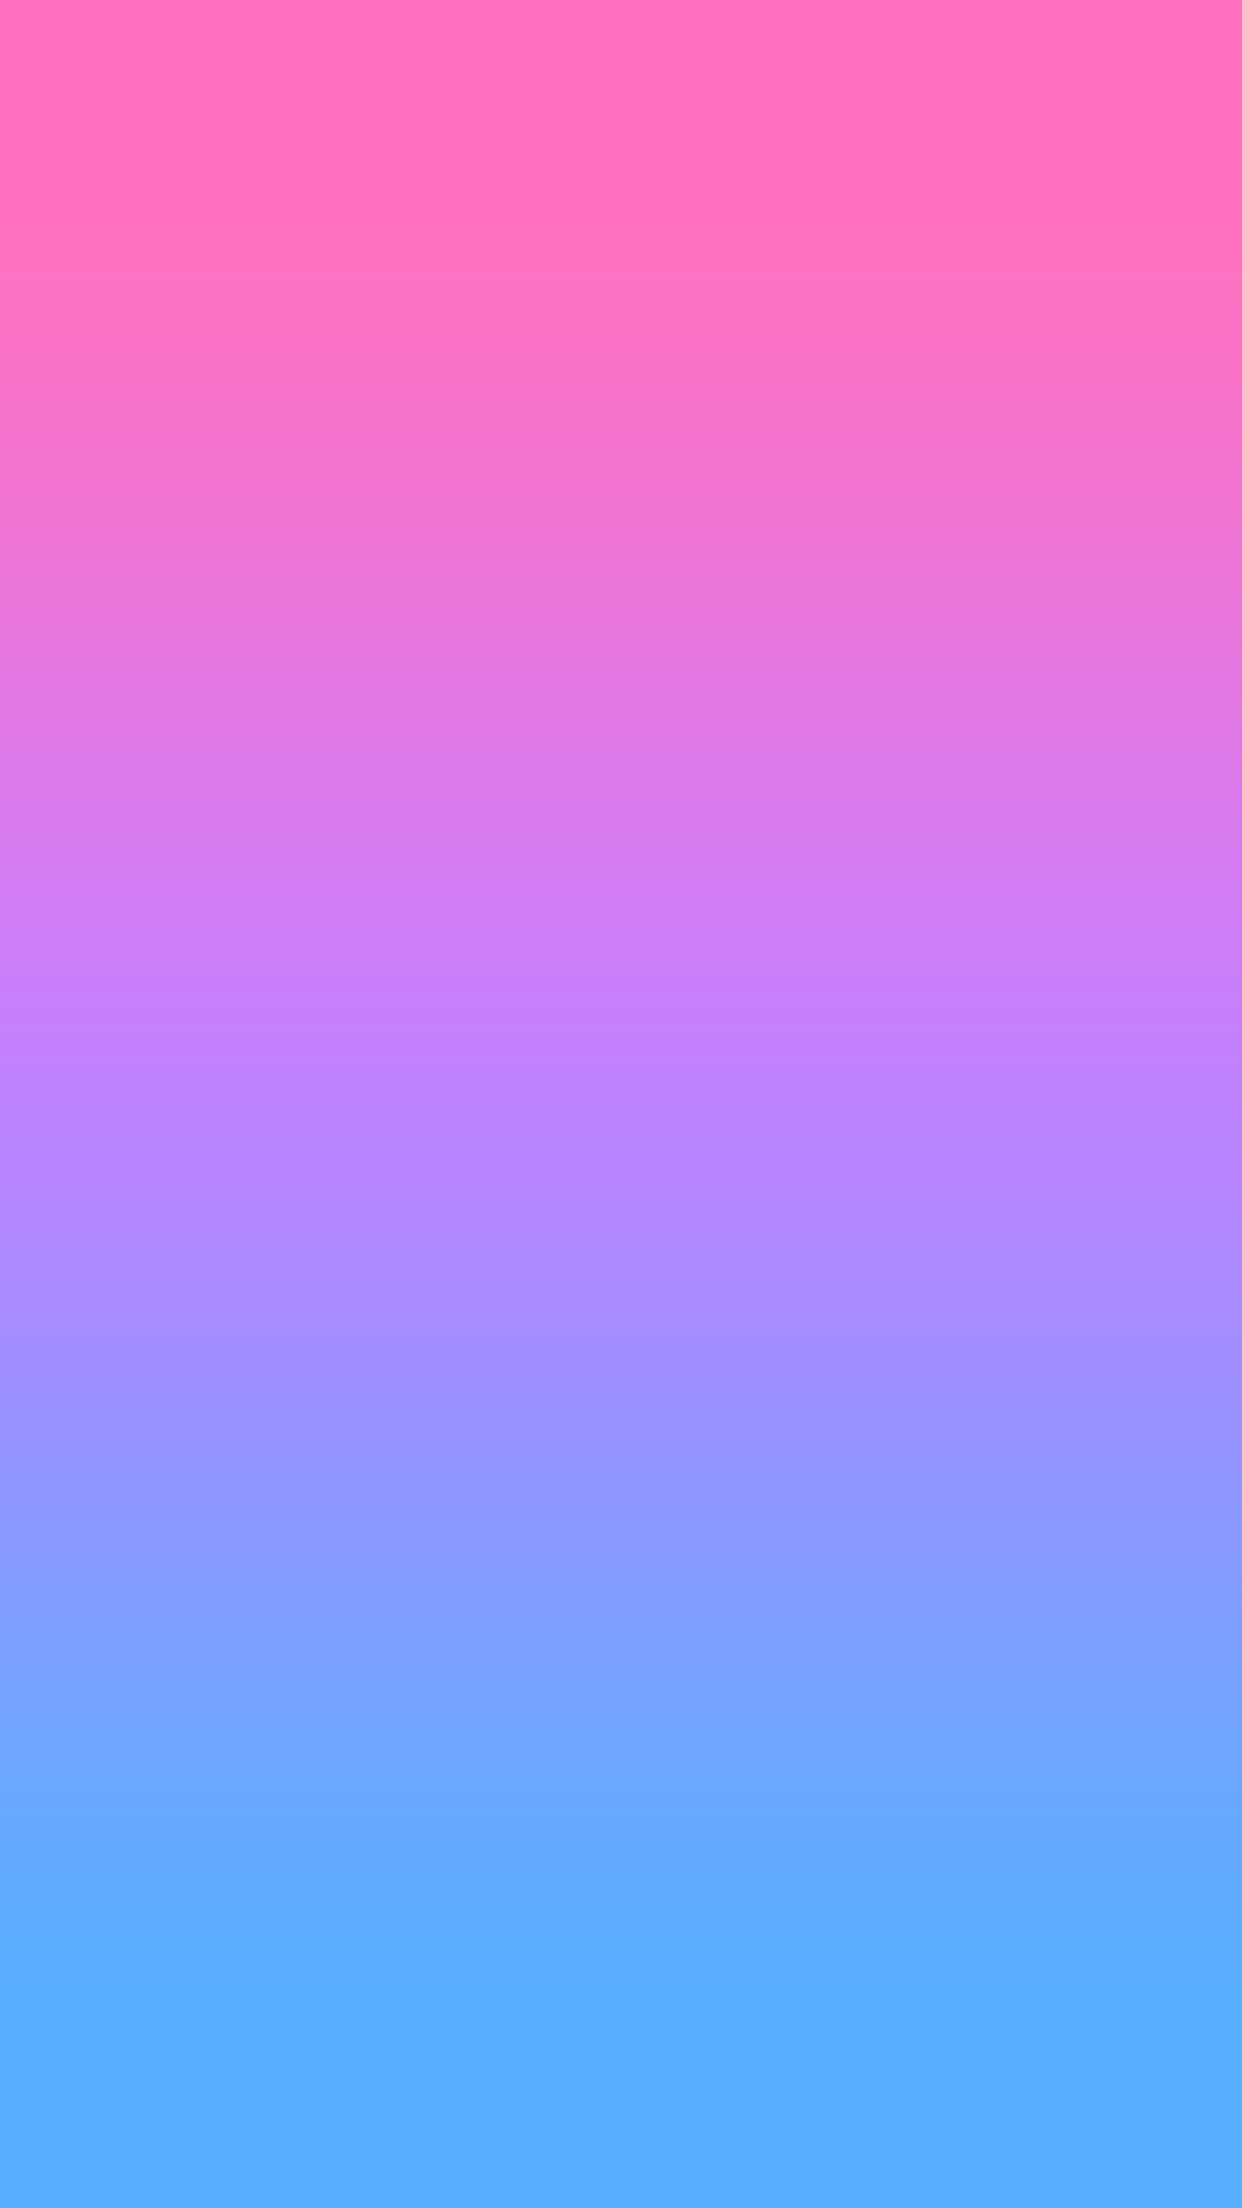 1242x2208  pink, purple, blue, violet, gradient, ombre, wallpaper, background